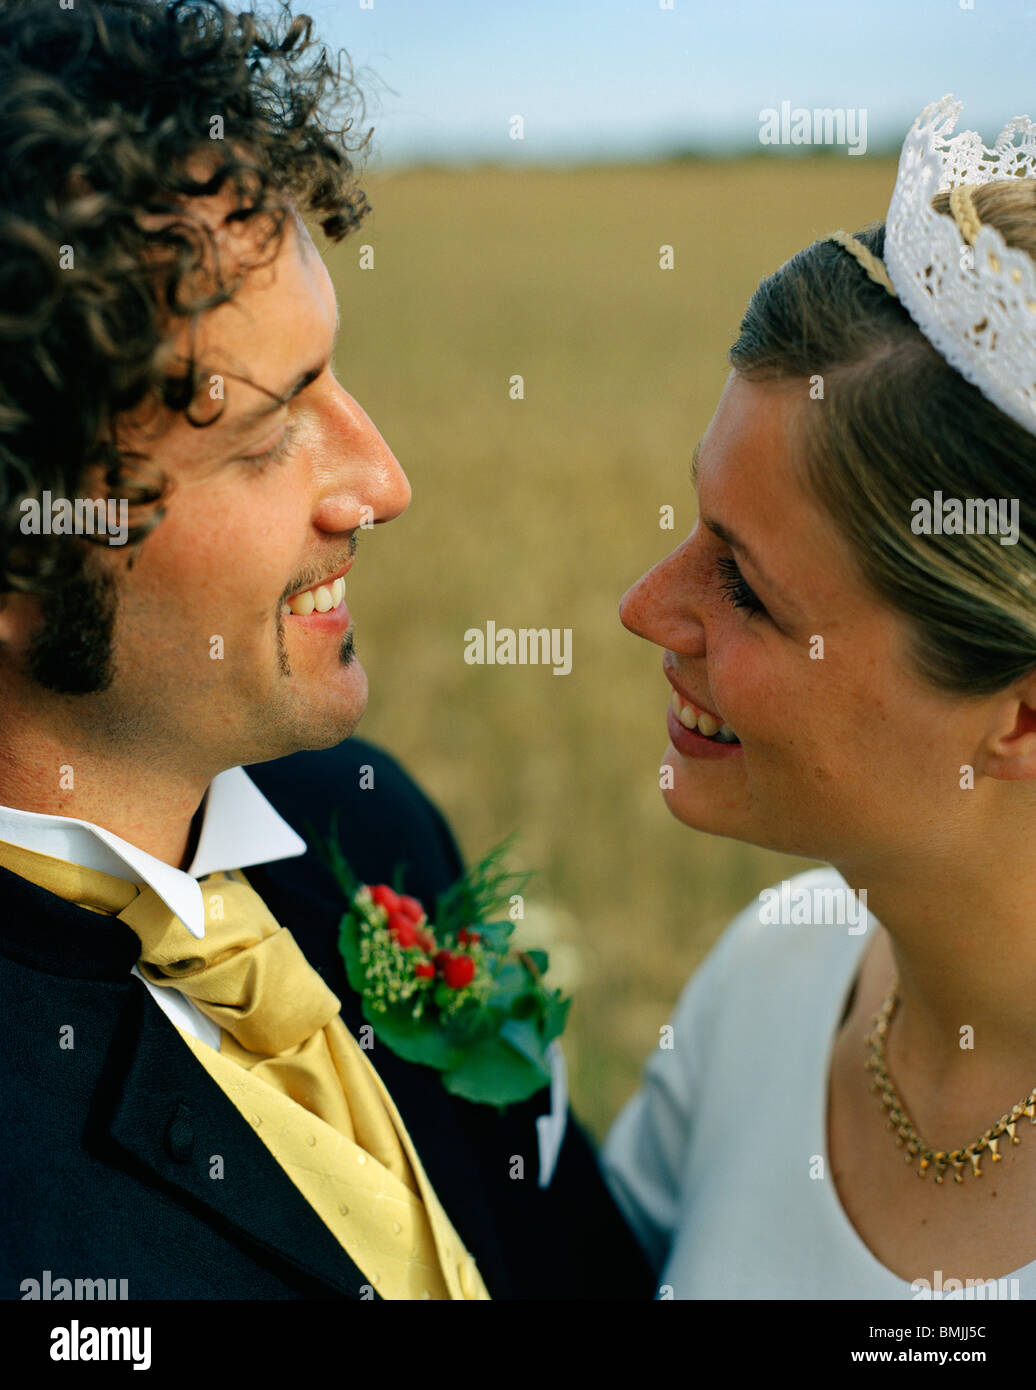 Scandinavia, Sweden, Oland, Bride and groom smiling at each other, close-up Stock Photo